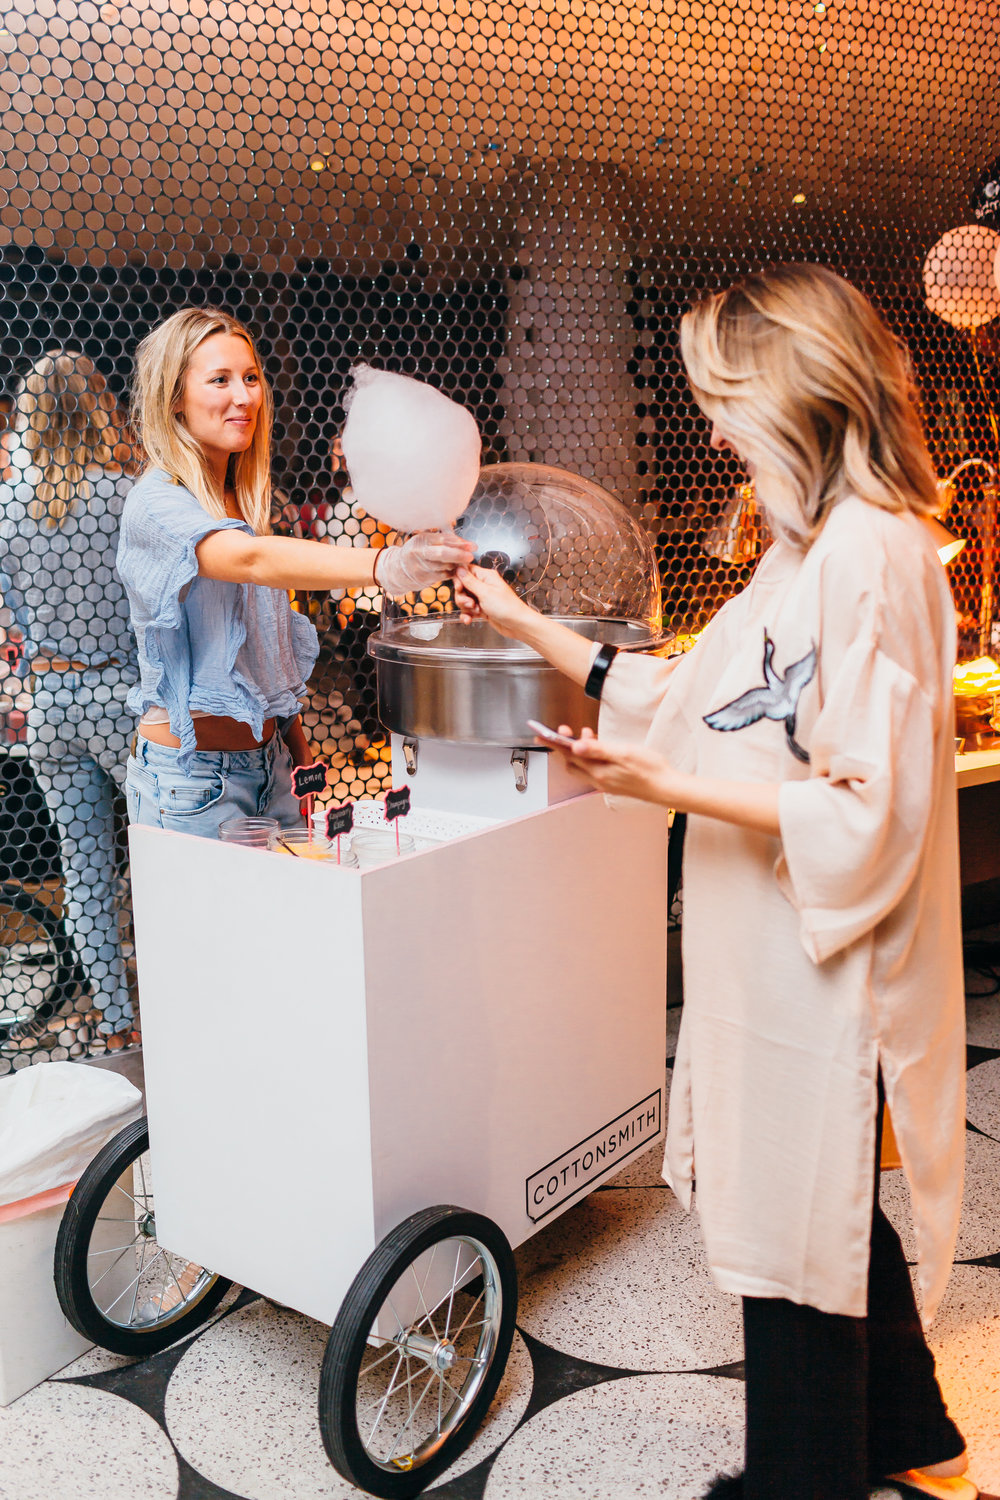 bumble-bff-dallas-launch-event-6567.jpg